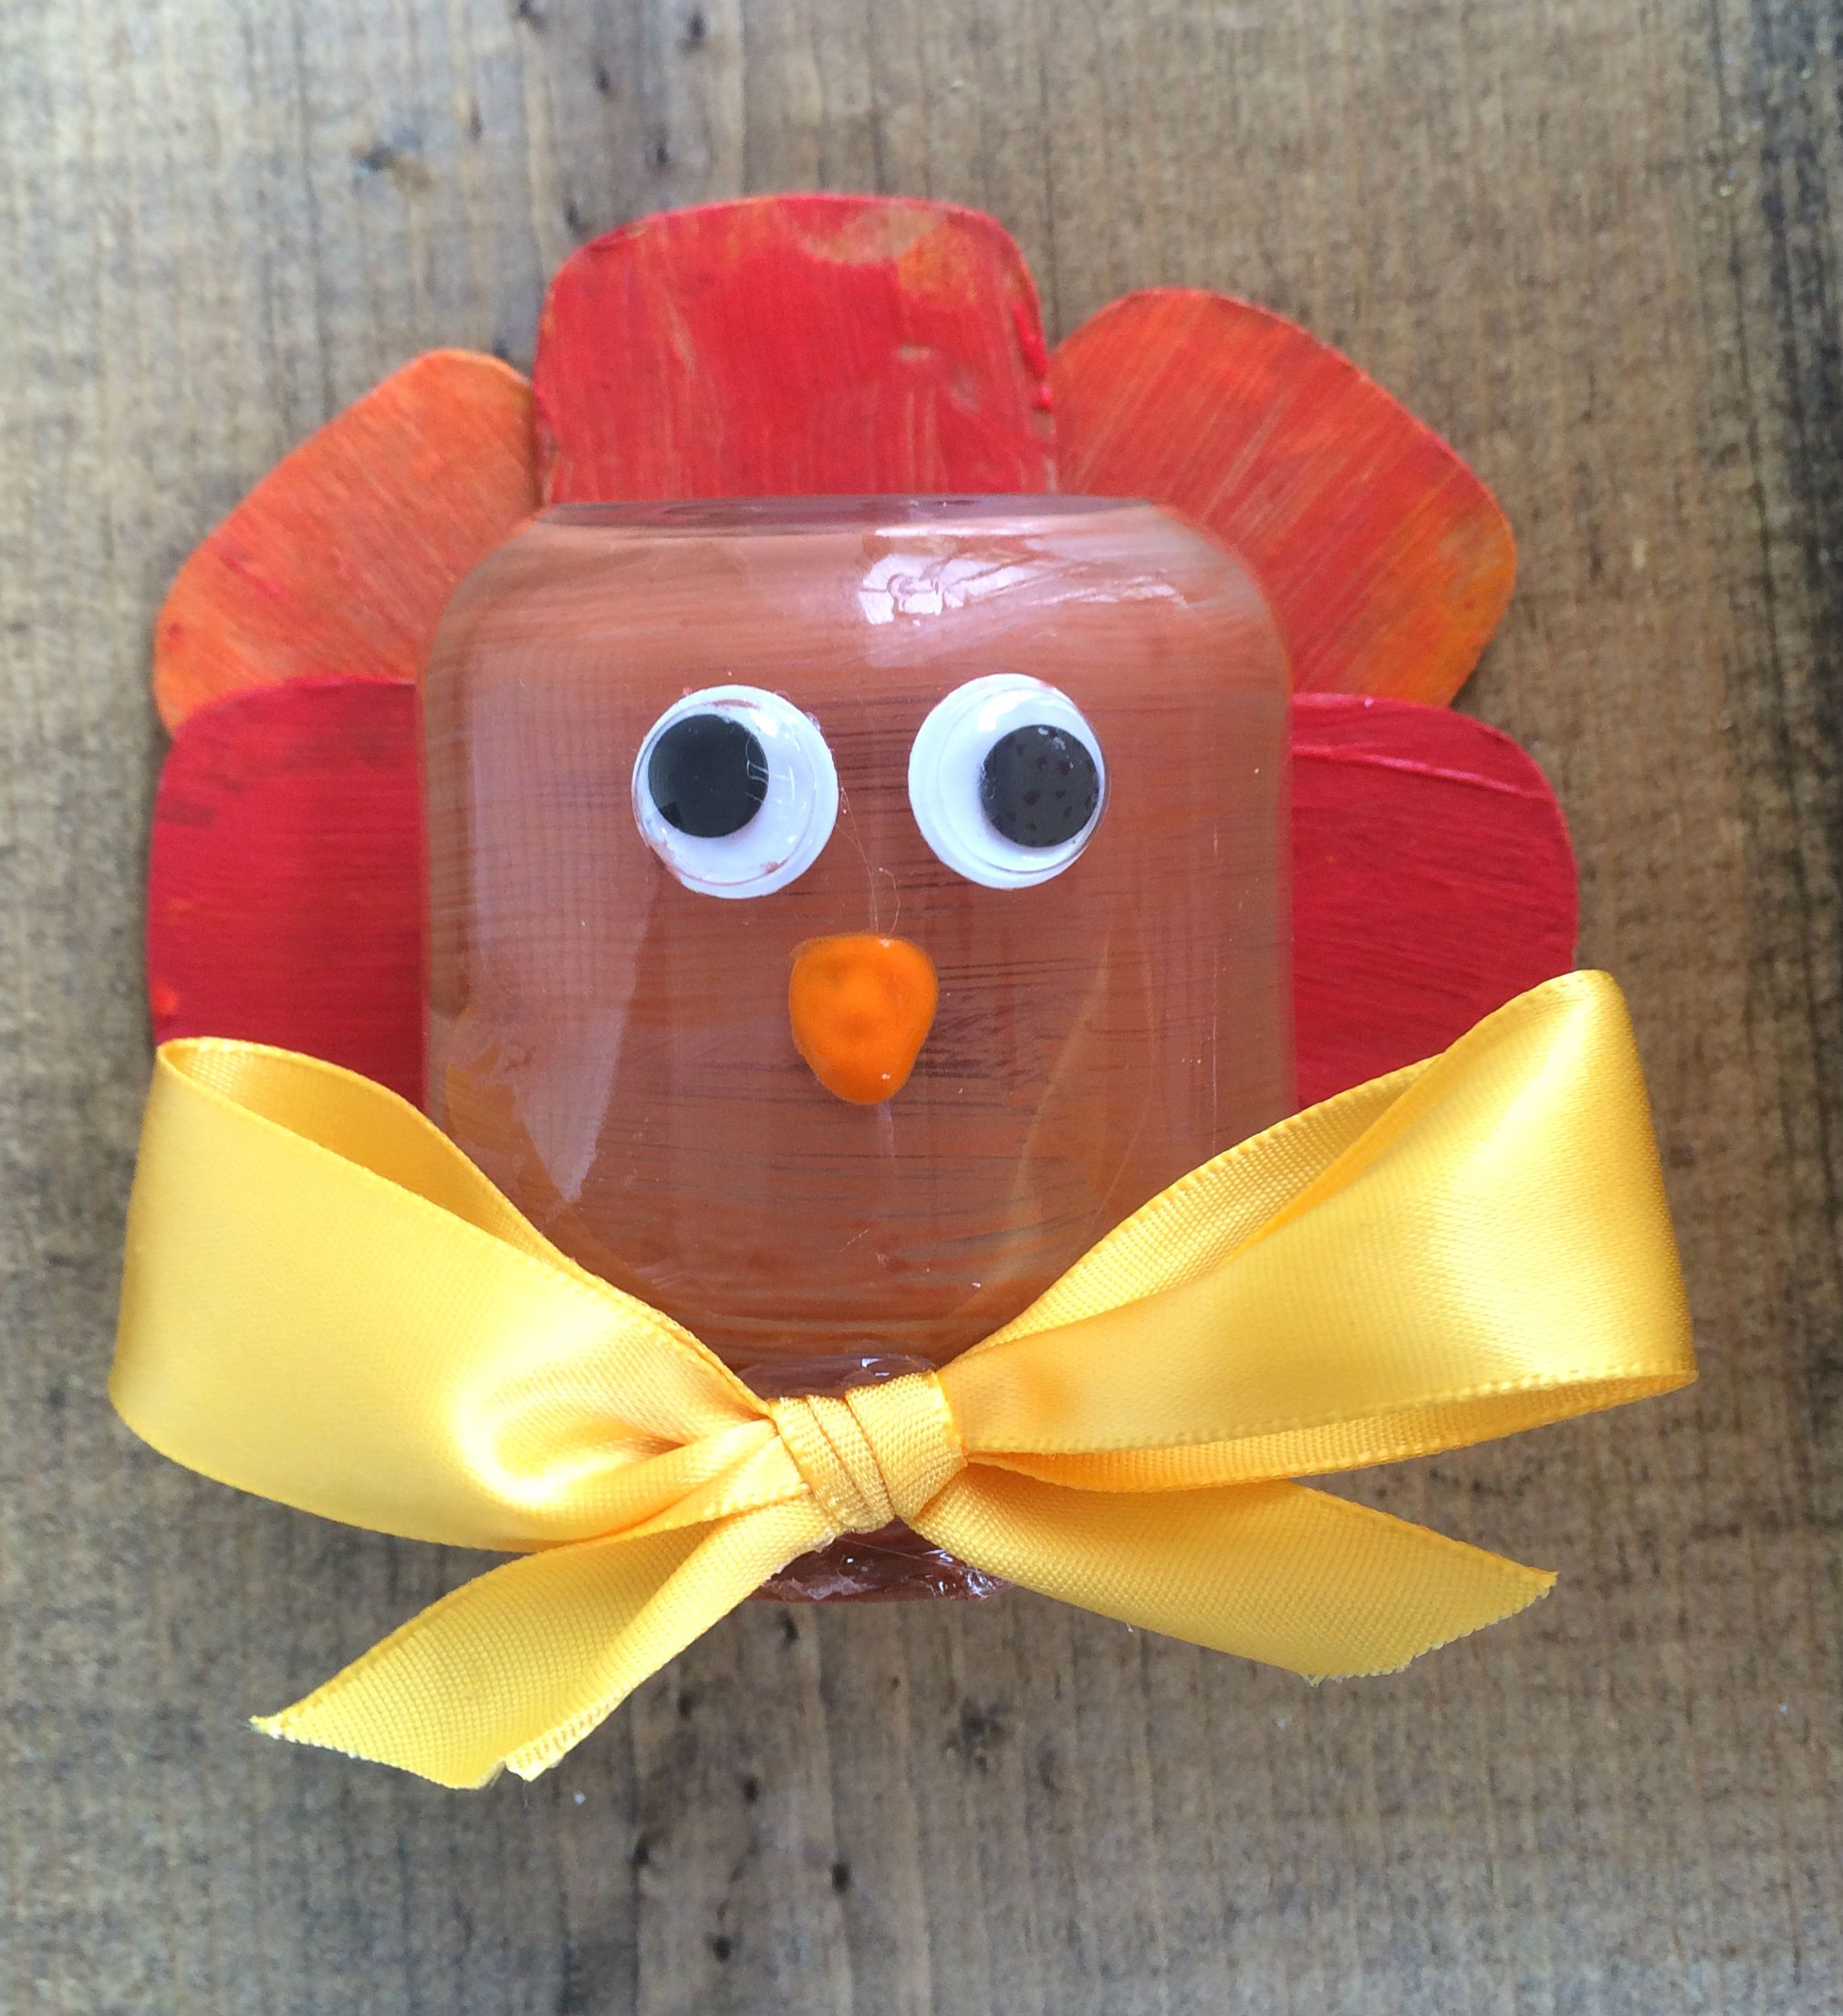 Make This Fun Turkey Craft From Recycled Baby Food Jar